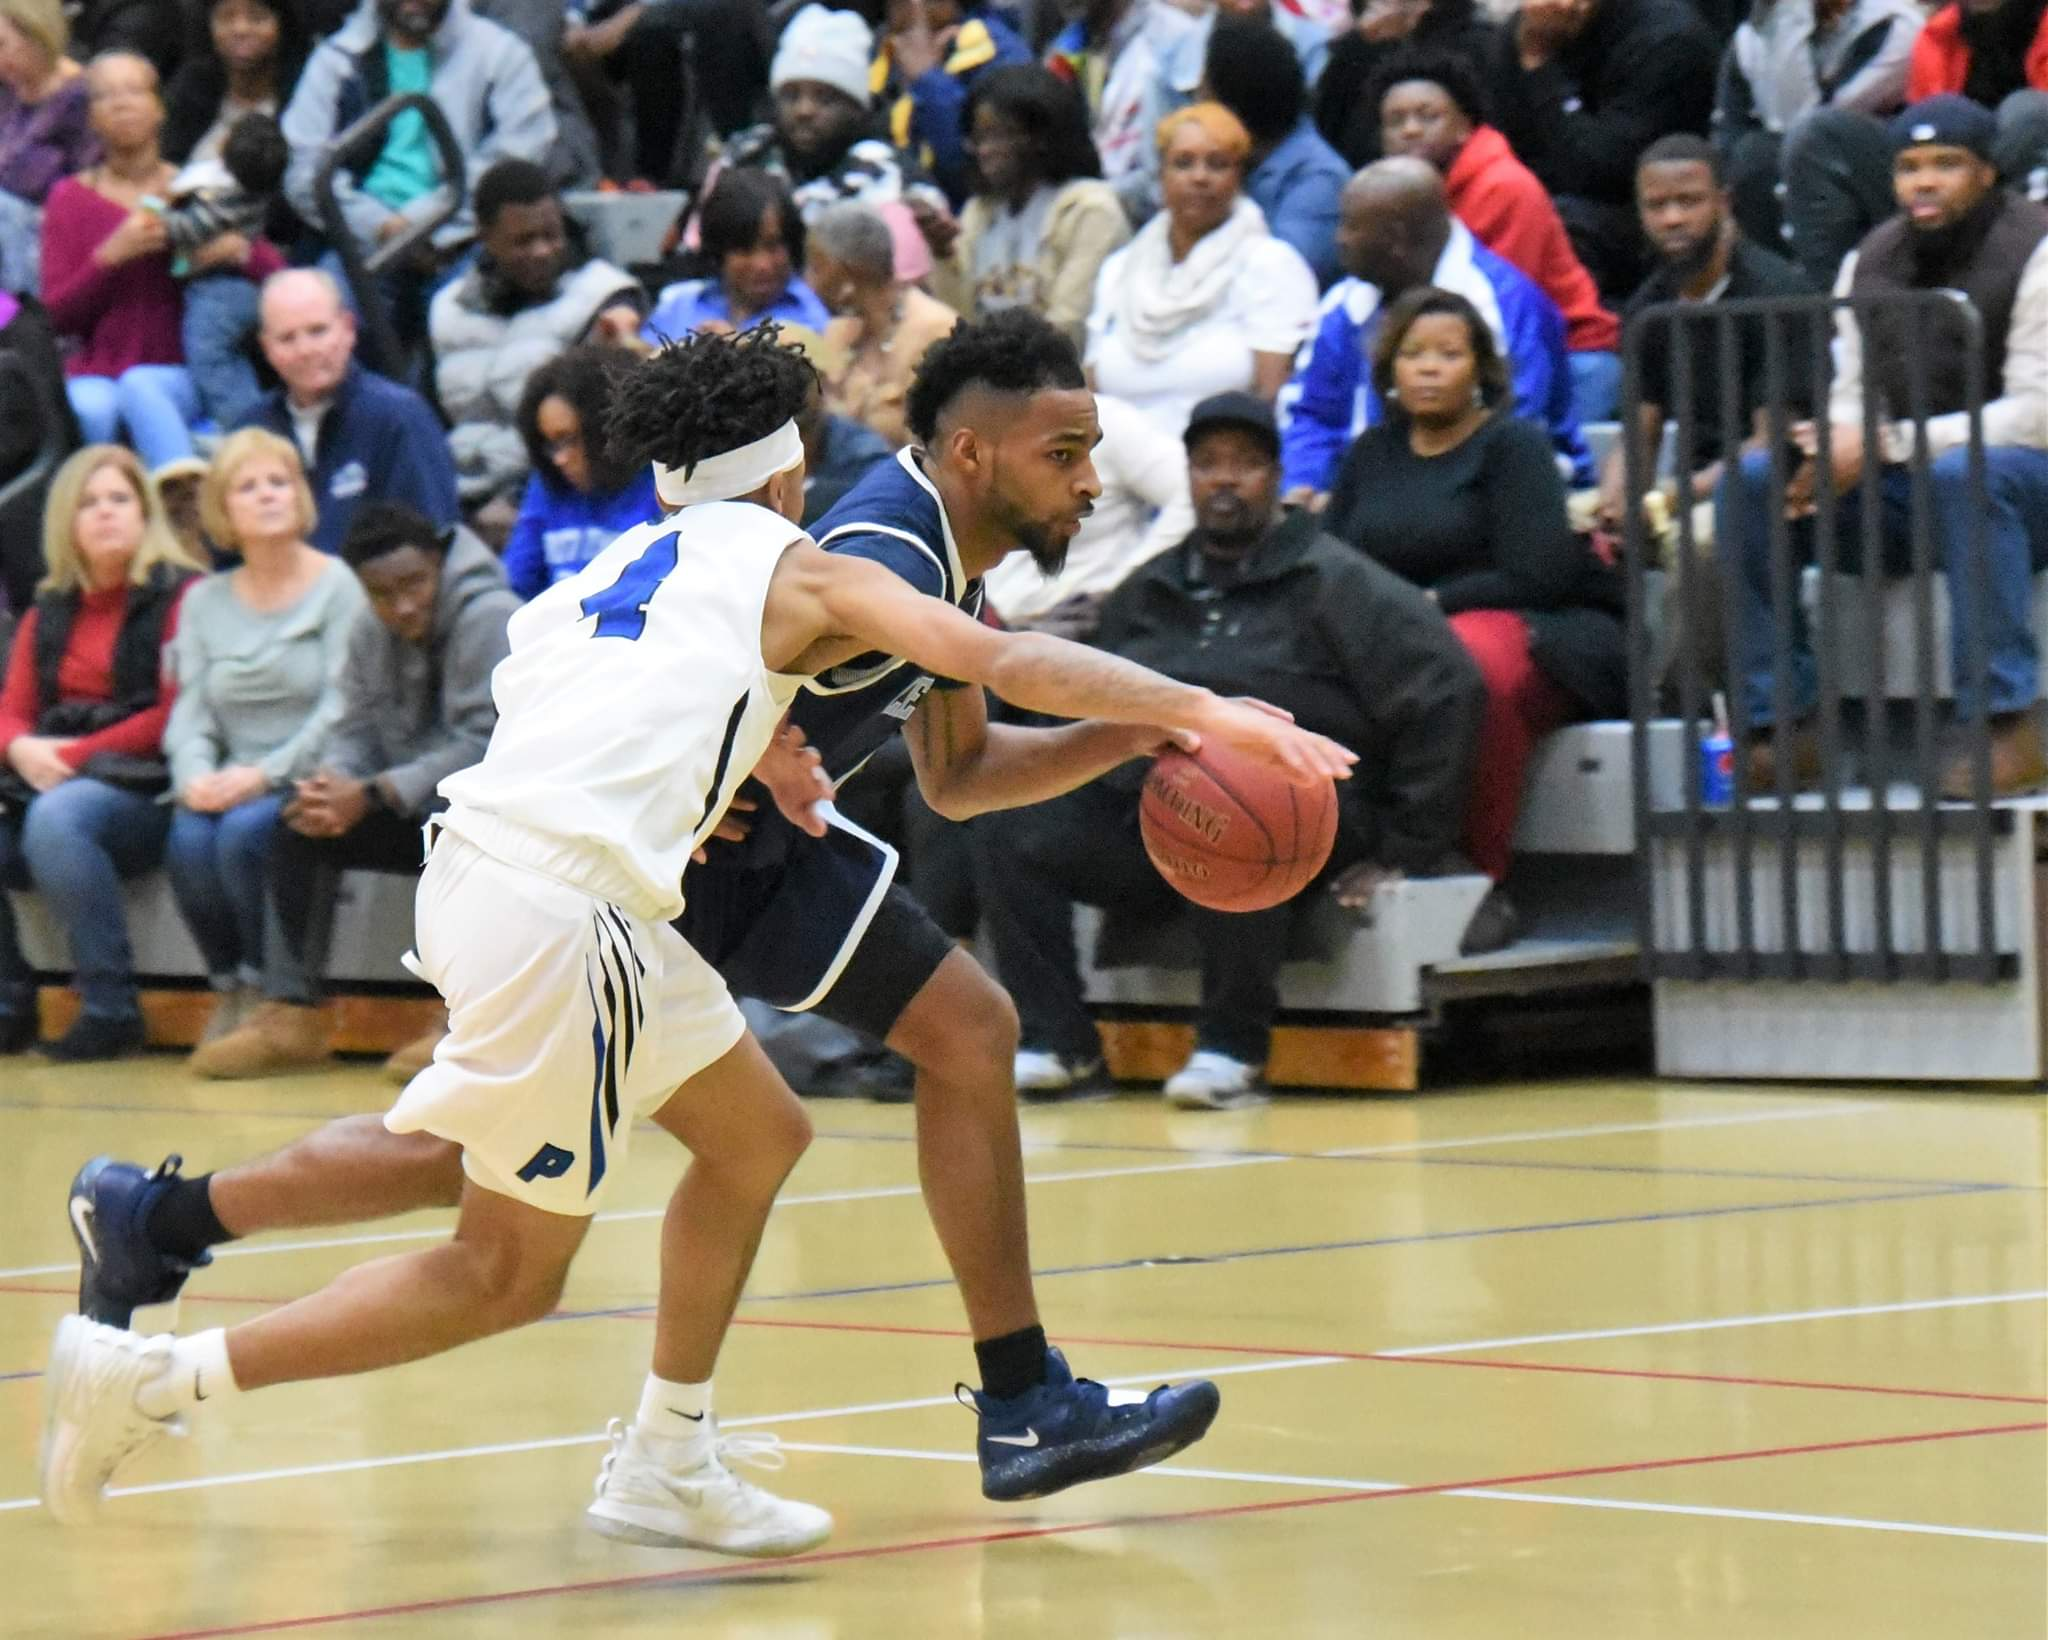 """Lenoir Community College's Darius Dunn brings the ball up the court under duress from Pitt Community College's DonQuez Davis in Wednesday's game. Photo by William """"Bud"""" Hardy / Neuse News"""